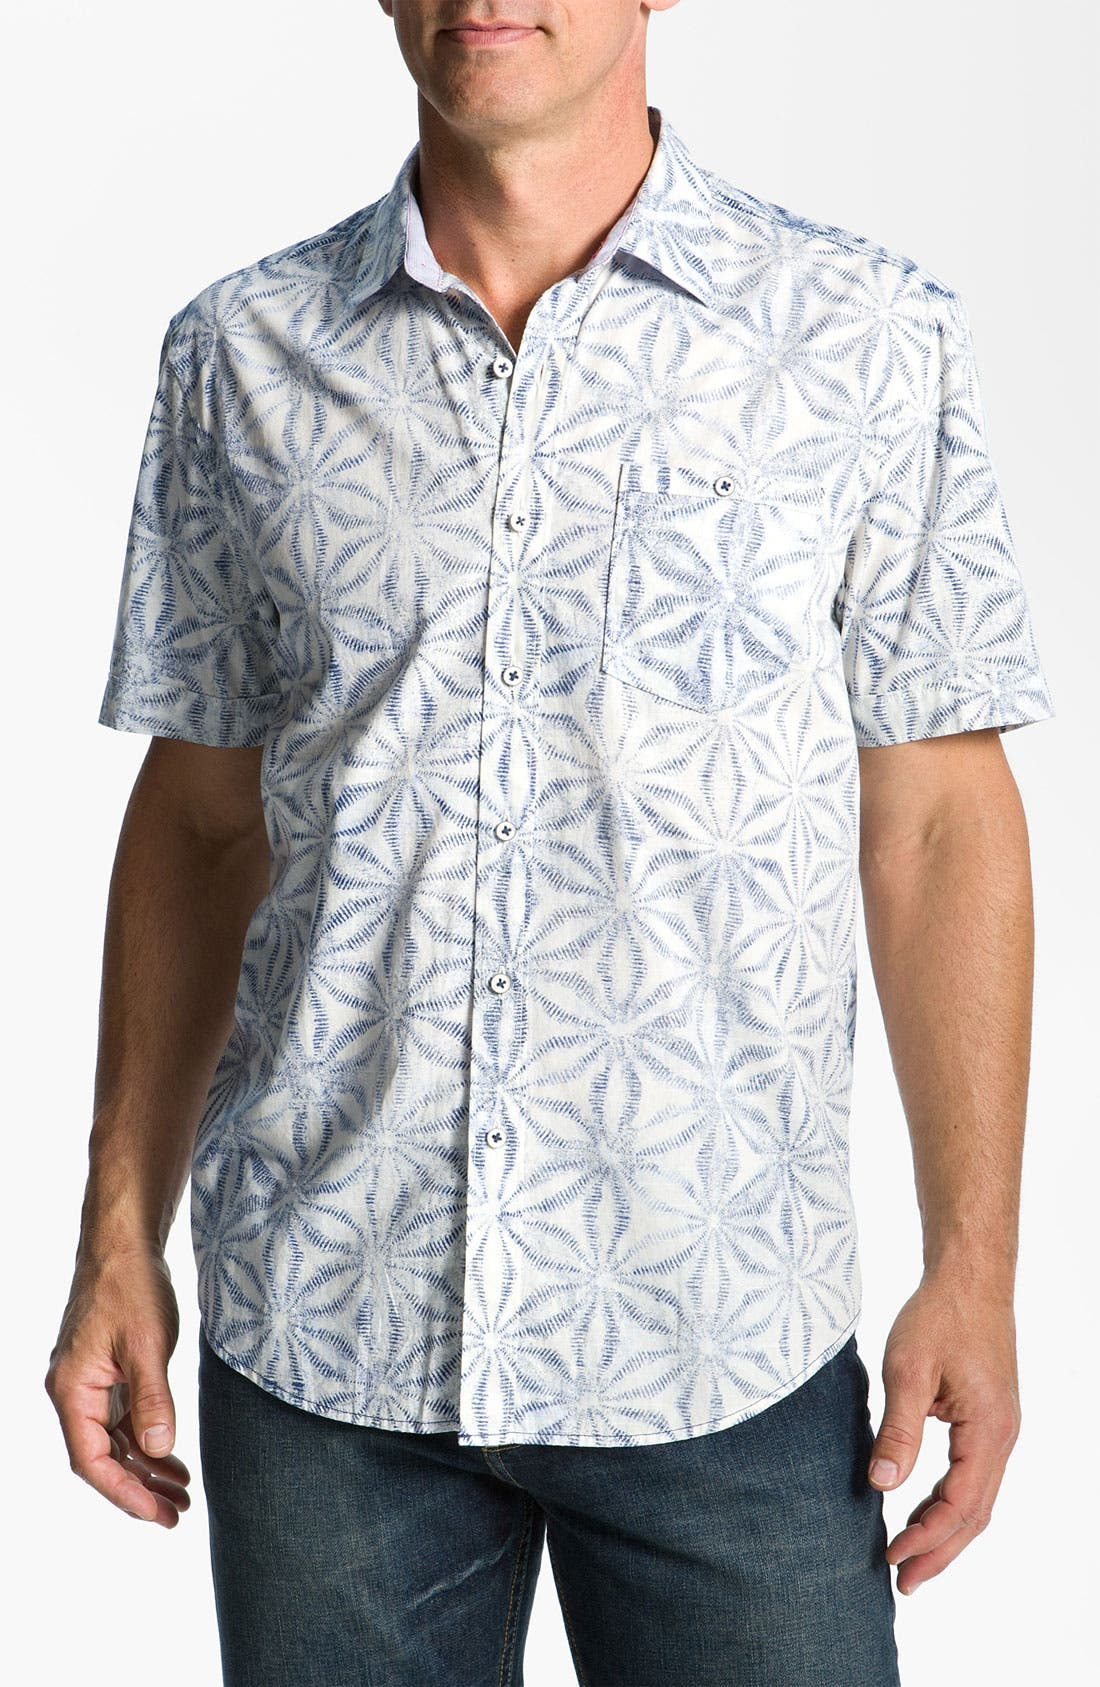 Alternate Image 1 Selected - Tommy Bahama 'Blue Basil' Sport Shirt